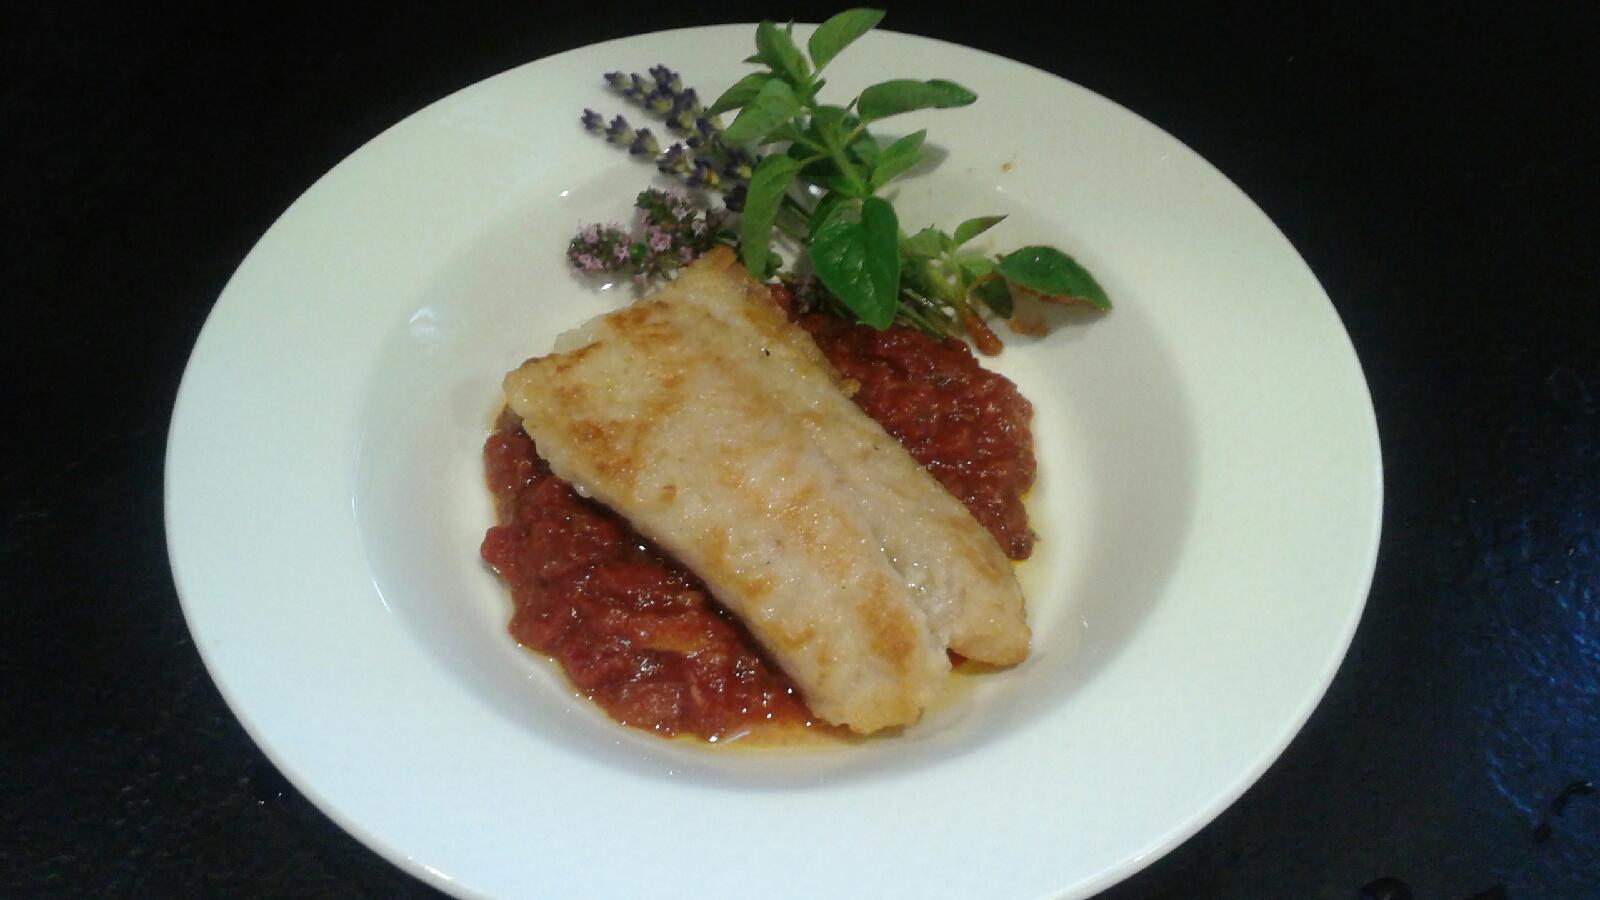 Seared Rockfish, Tomato-Roasted Garlic Sauce